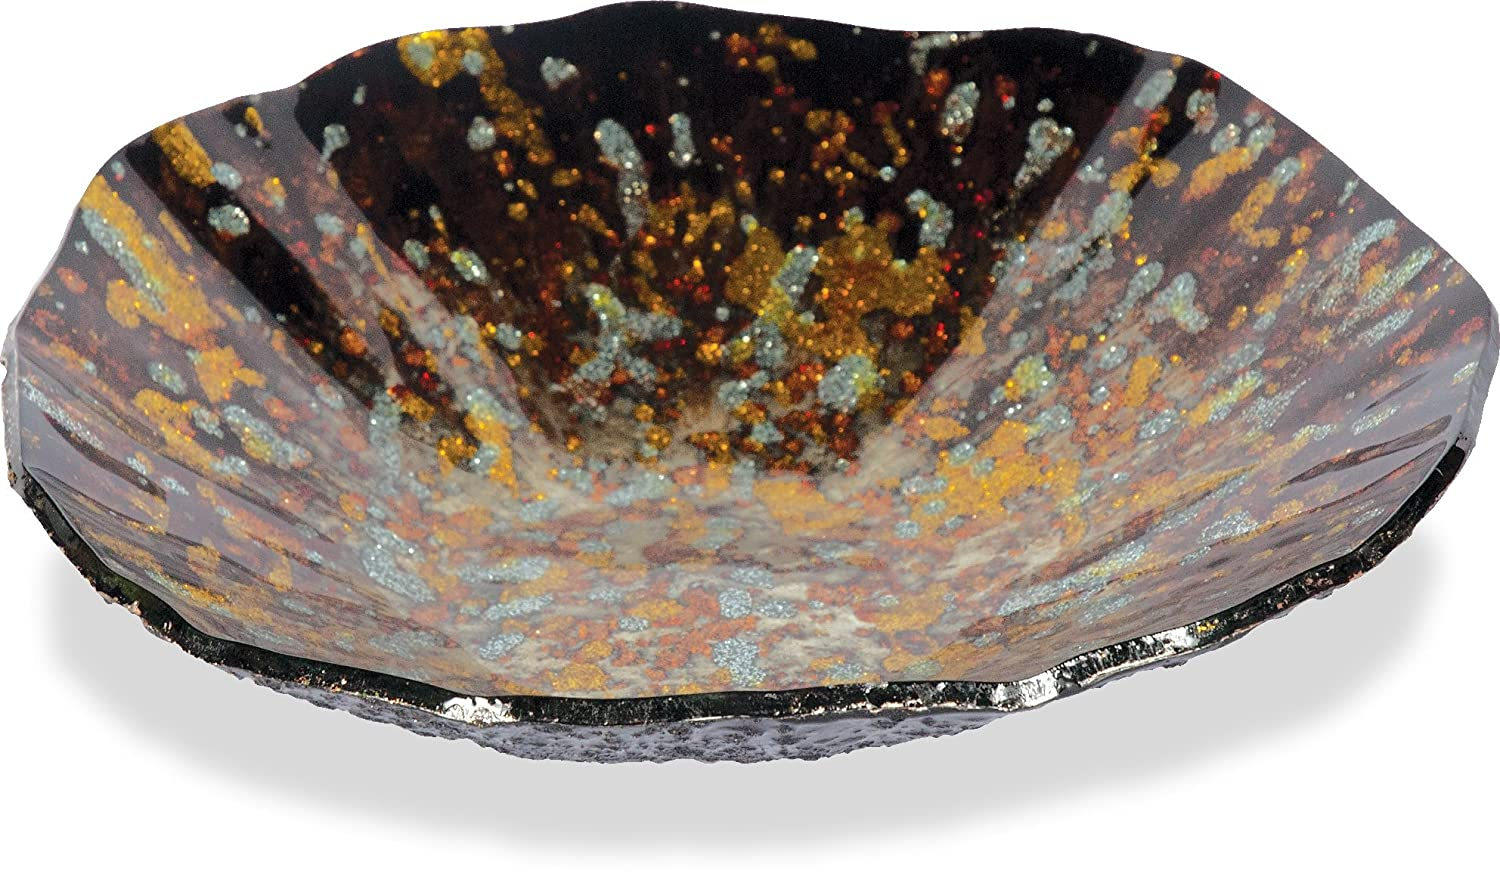 12-1//2-Inch AngelStar 19062 Handmade and Hand-Painted Glass Golden Brown Plate